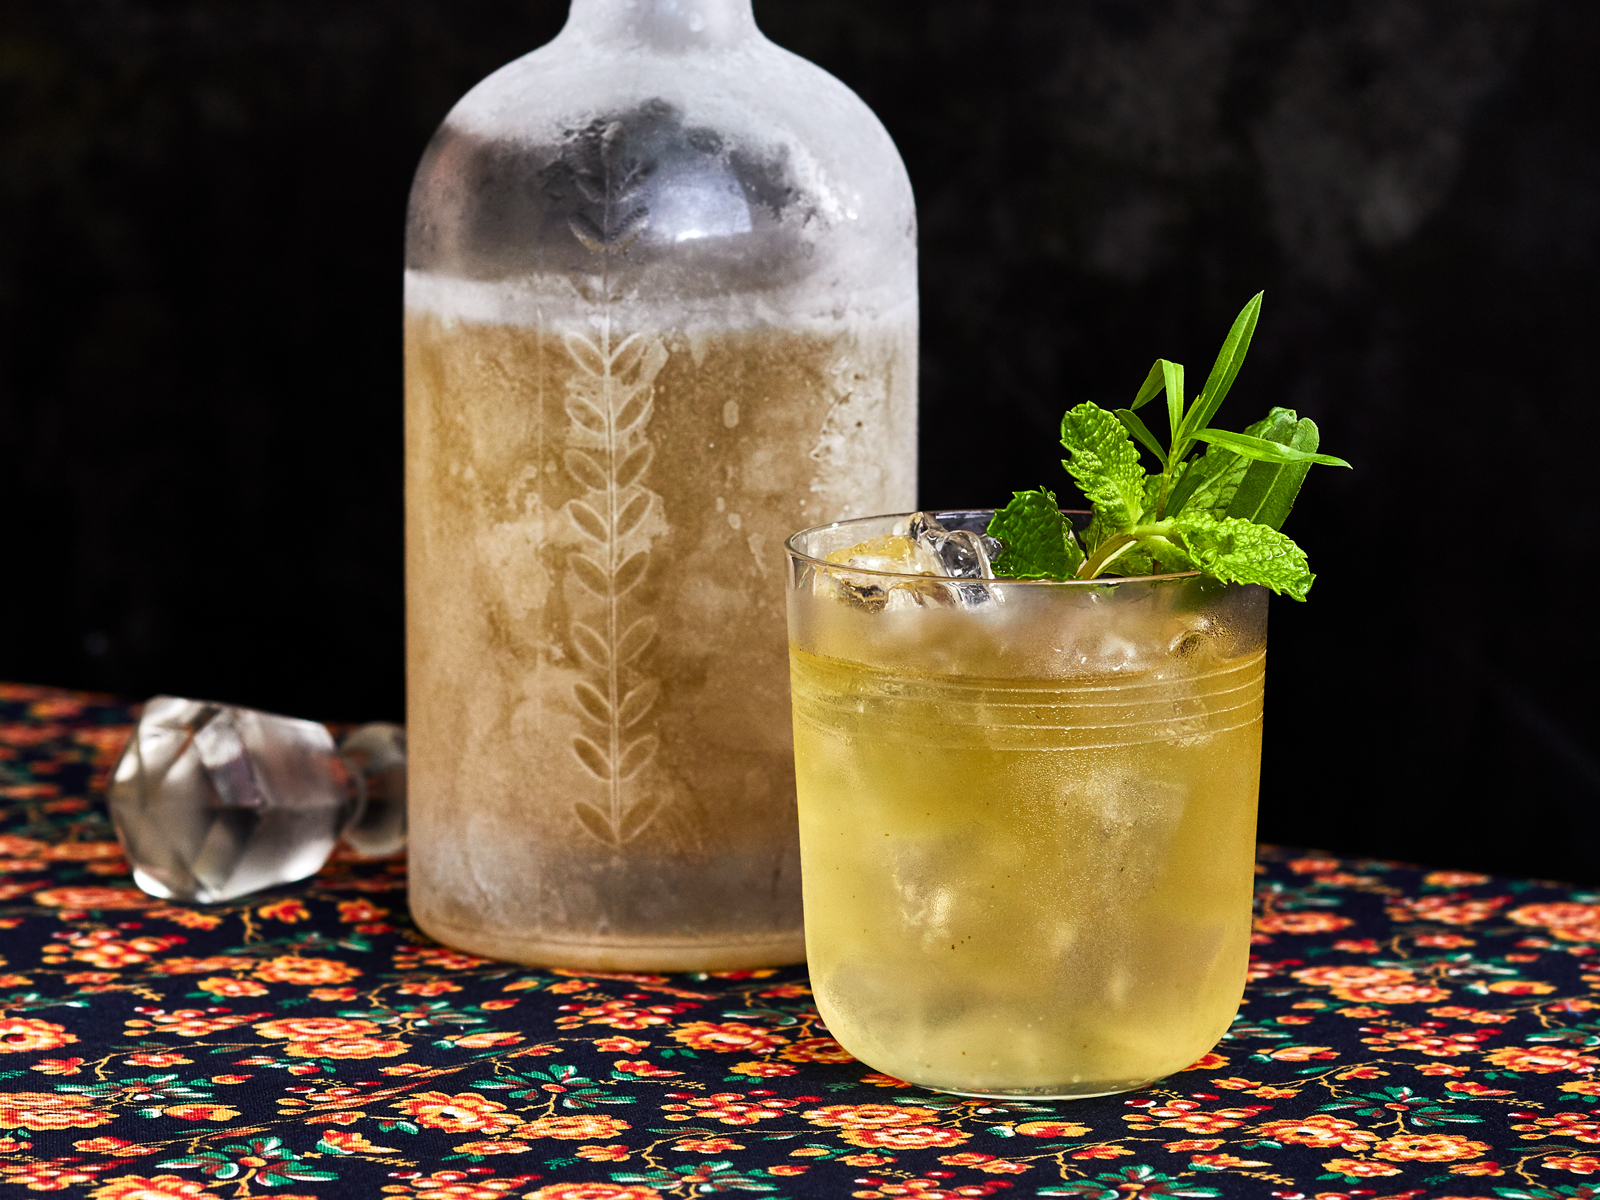 Tarragon-Mint Vodka Recipe